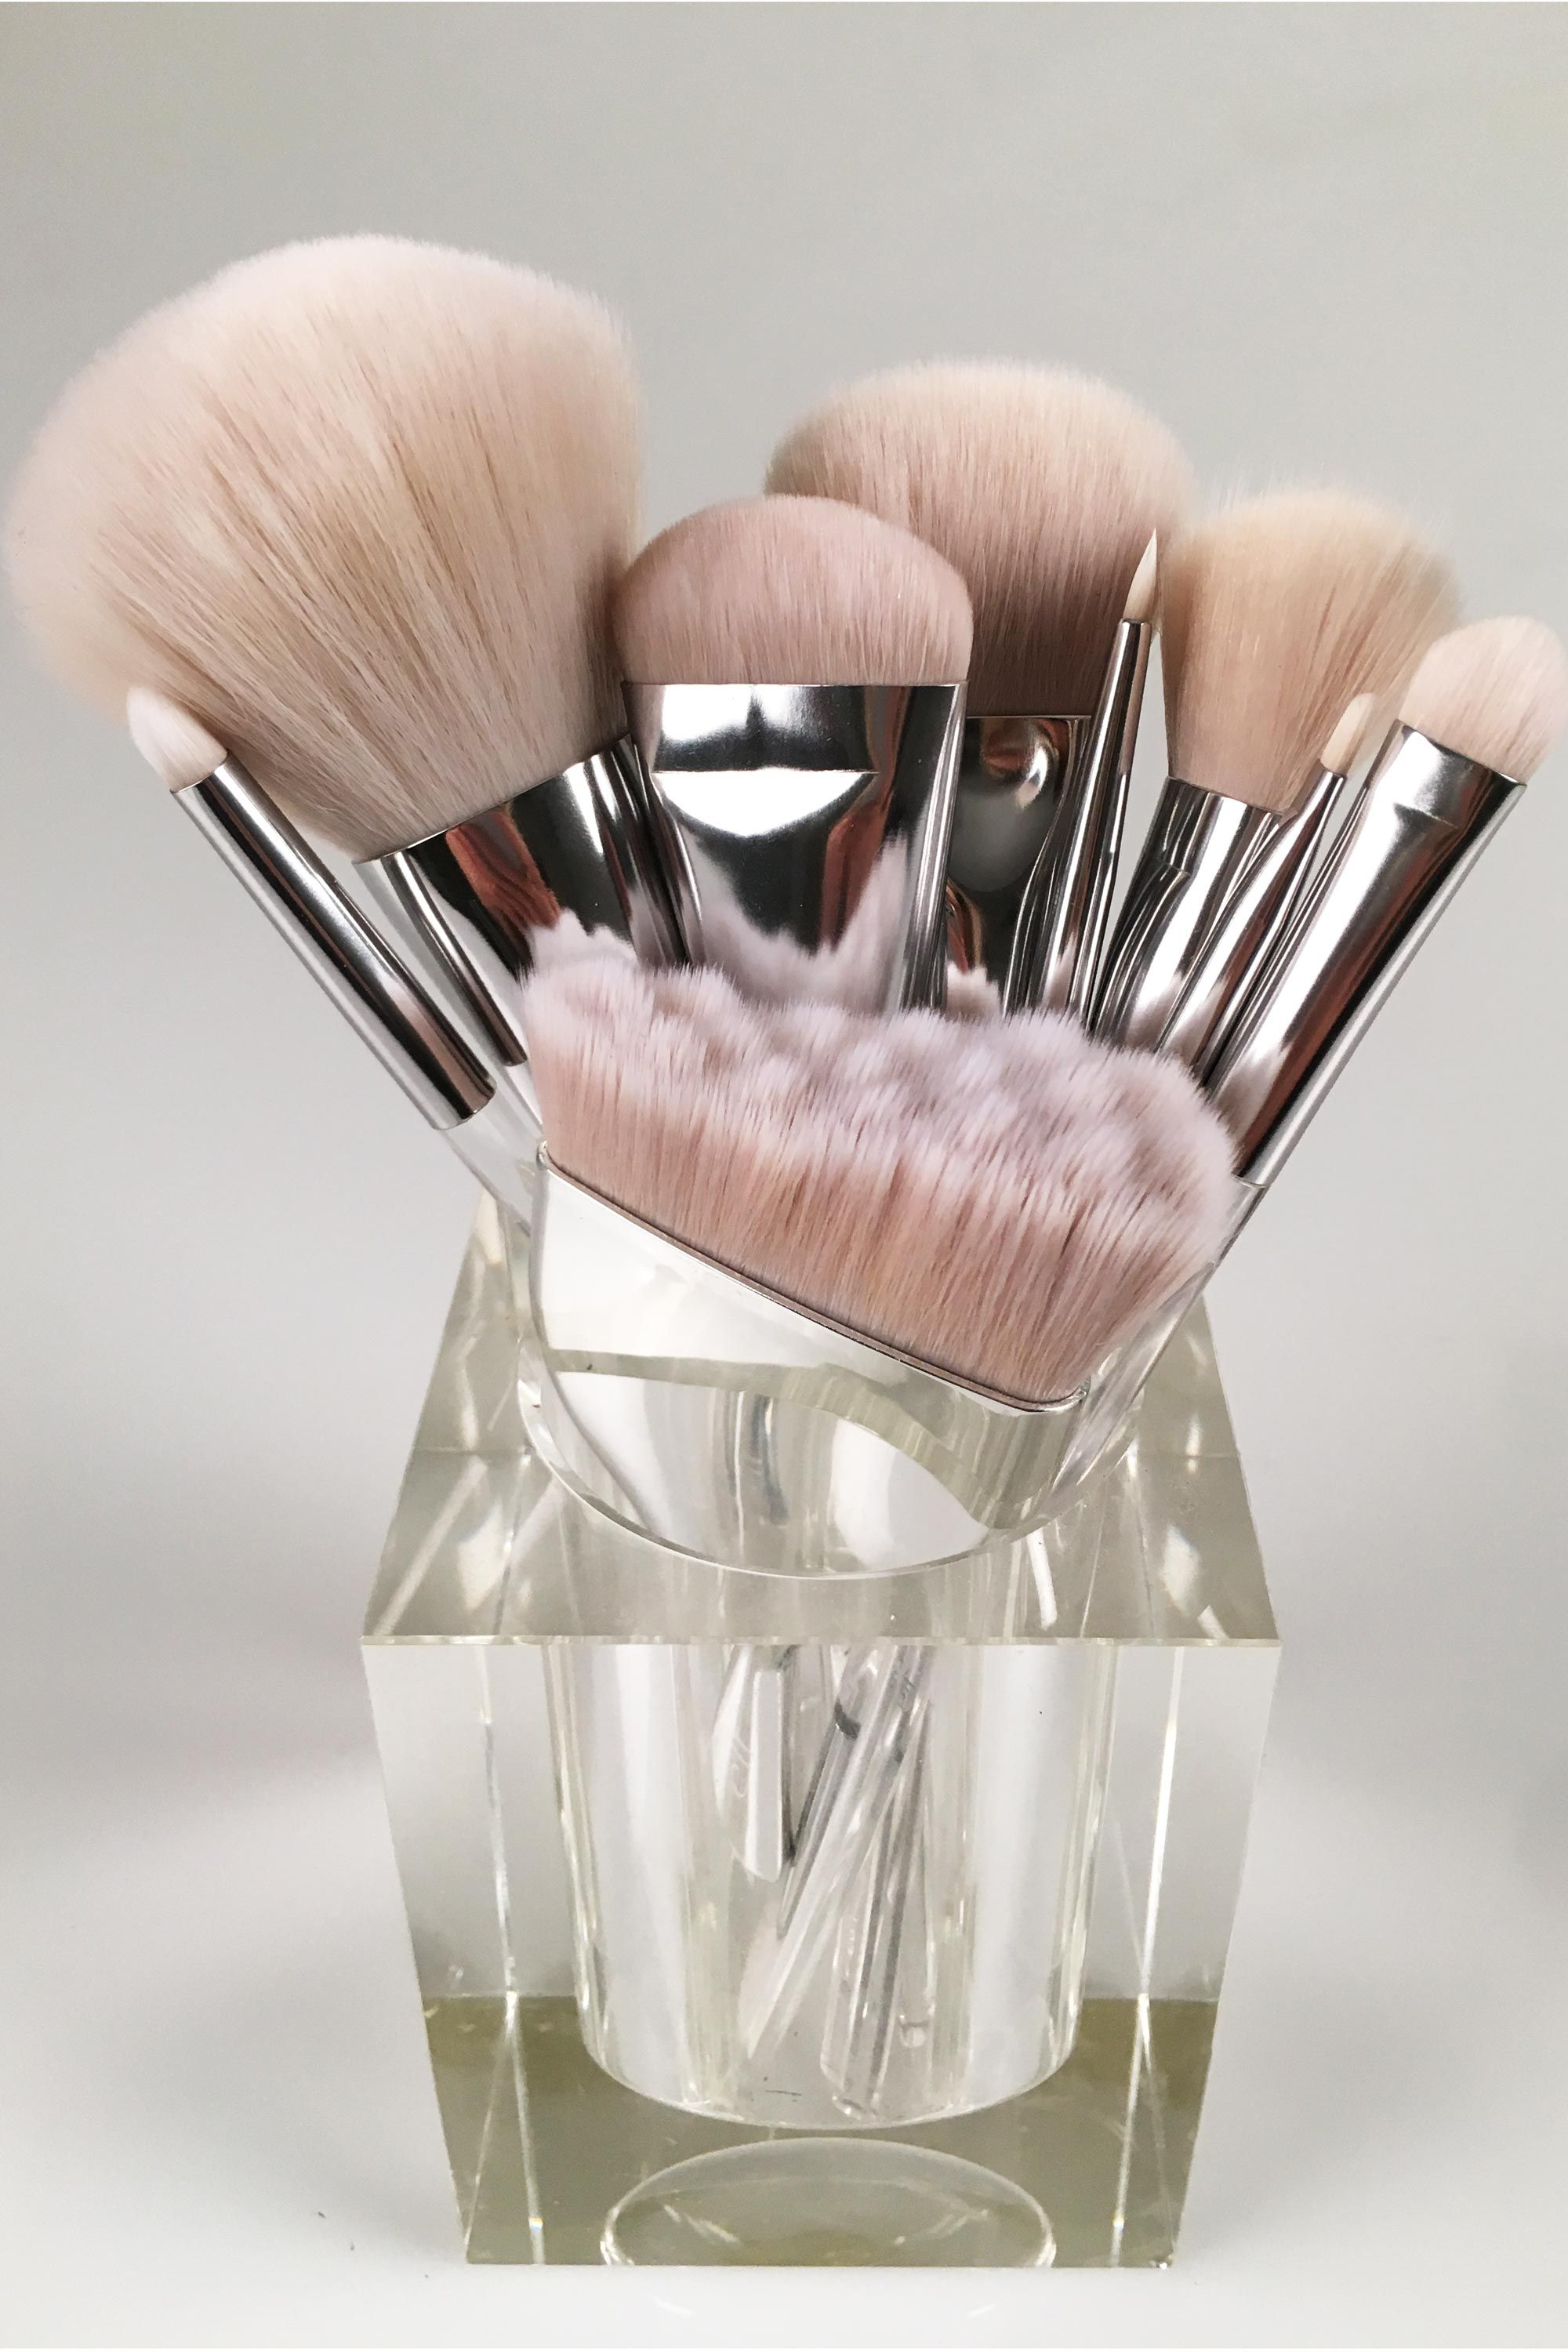 Why Everyone's Losing Their Minds Over These Makeup Brushes